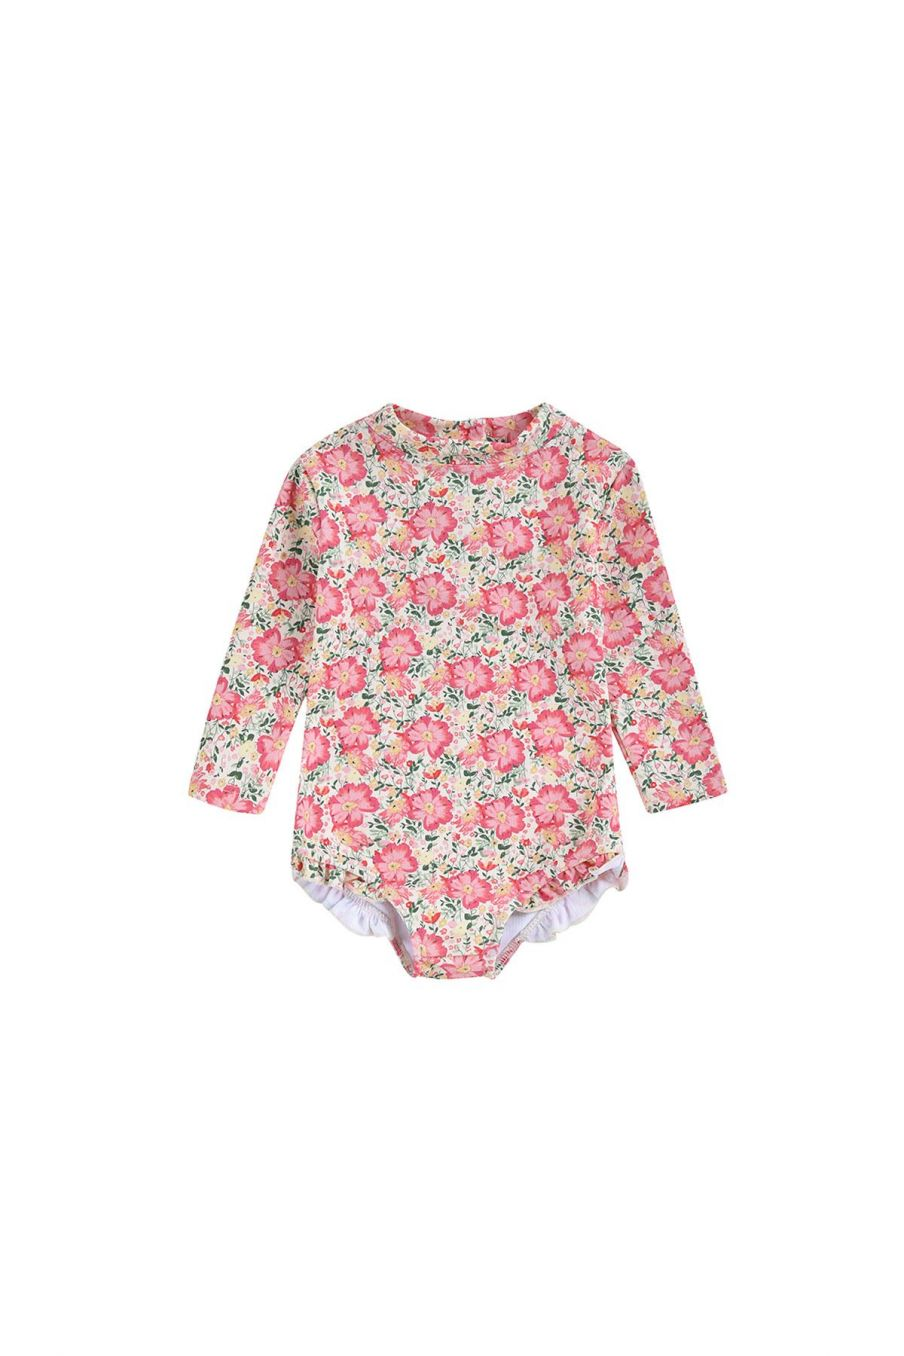 boheme chic vintage set de protection uv bébé fille aurelie pink meadow